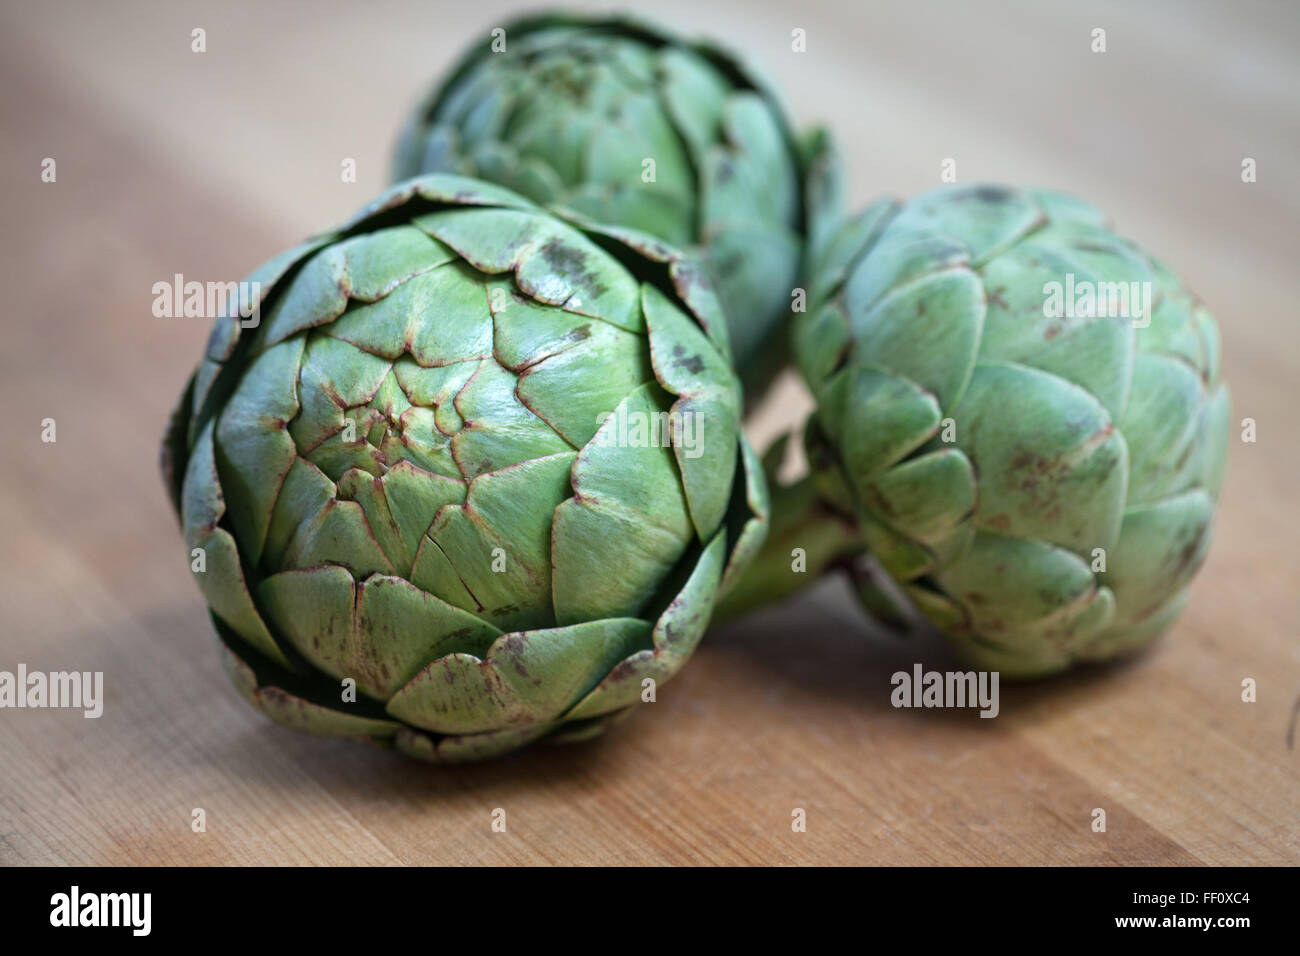 Three artichokes sitting on a wooden surface. - Stock Image